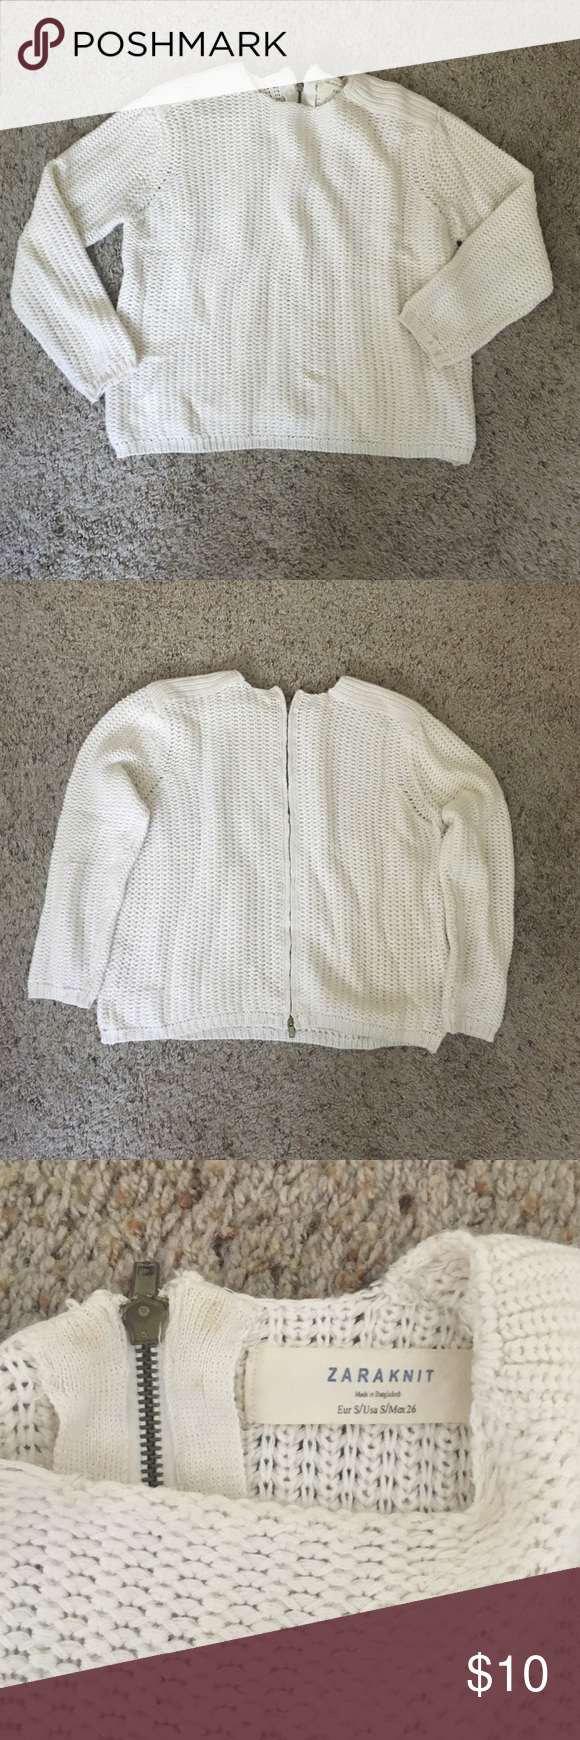 White Zara Sweater Gently used Zara box sweater- perfect for fall or winter! Zipper in back zips all the way down. Zara Sweaters Crew & Scoop Necks